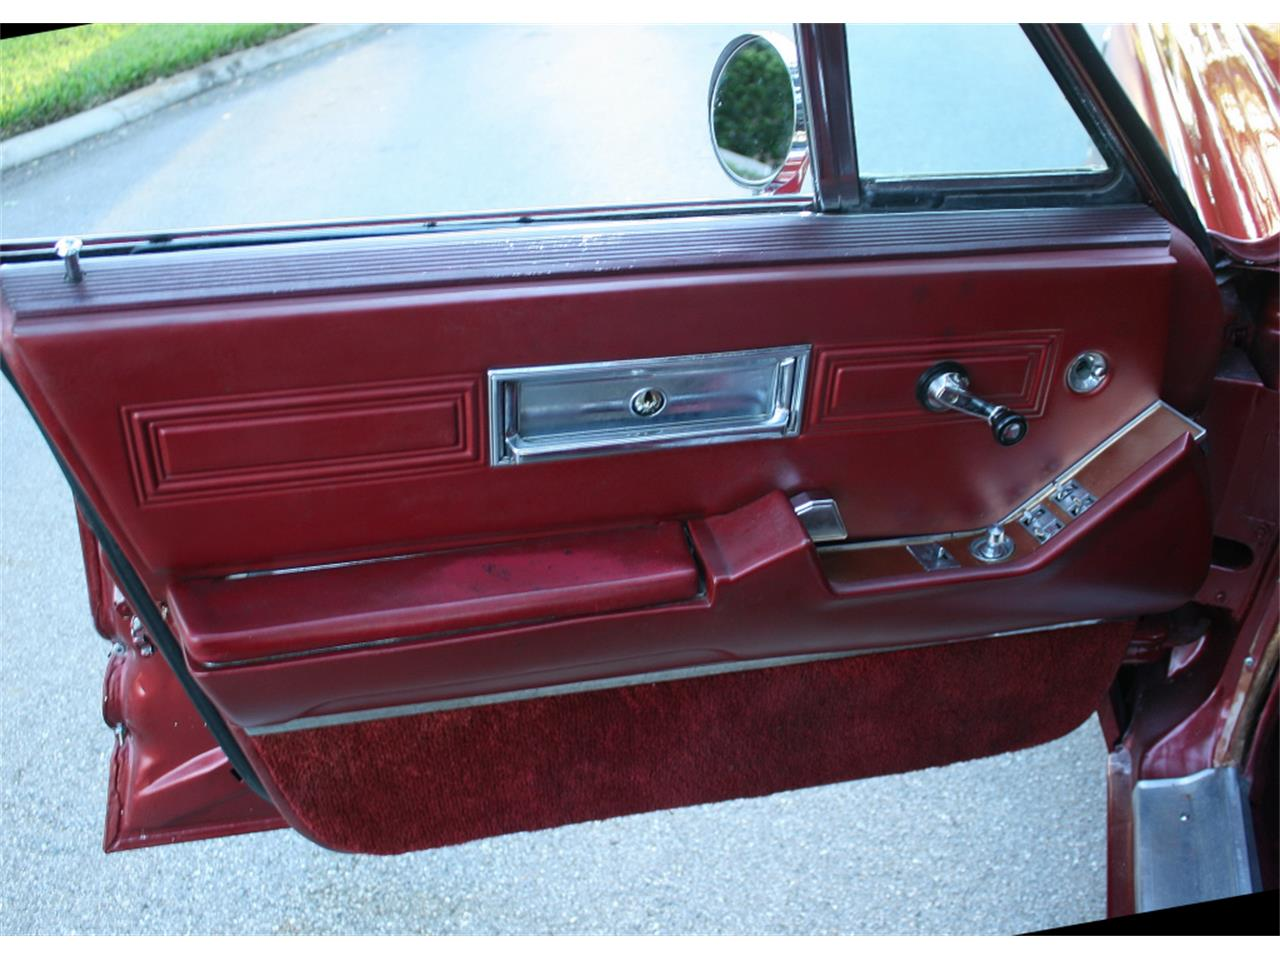 1968 Chrysler Imperial for sale in Lakeland, FL – photo 34